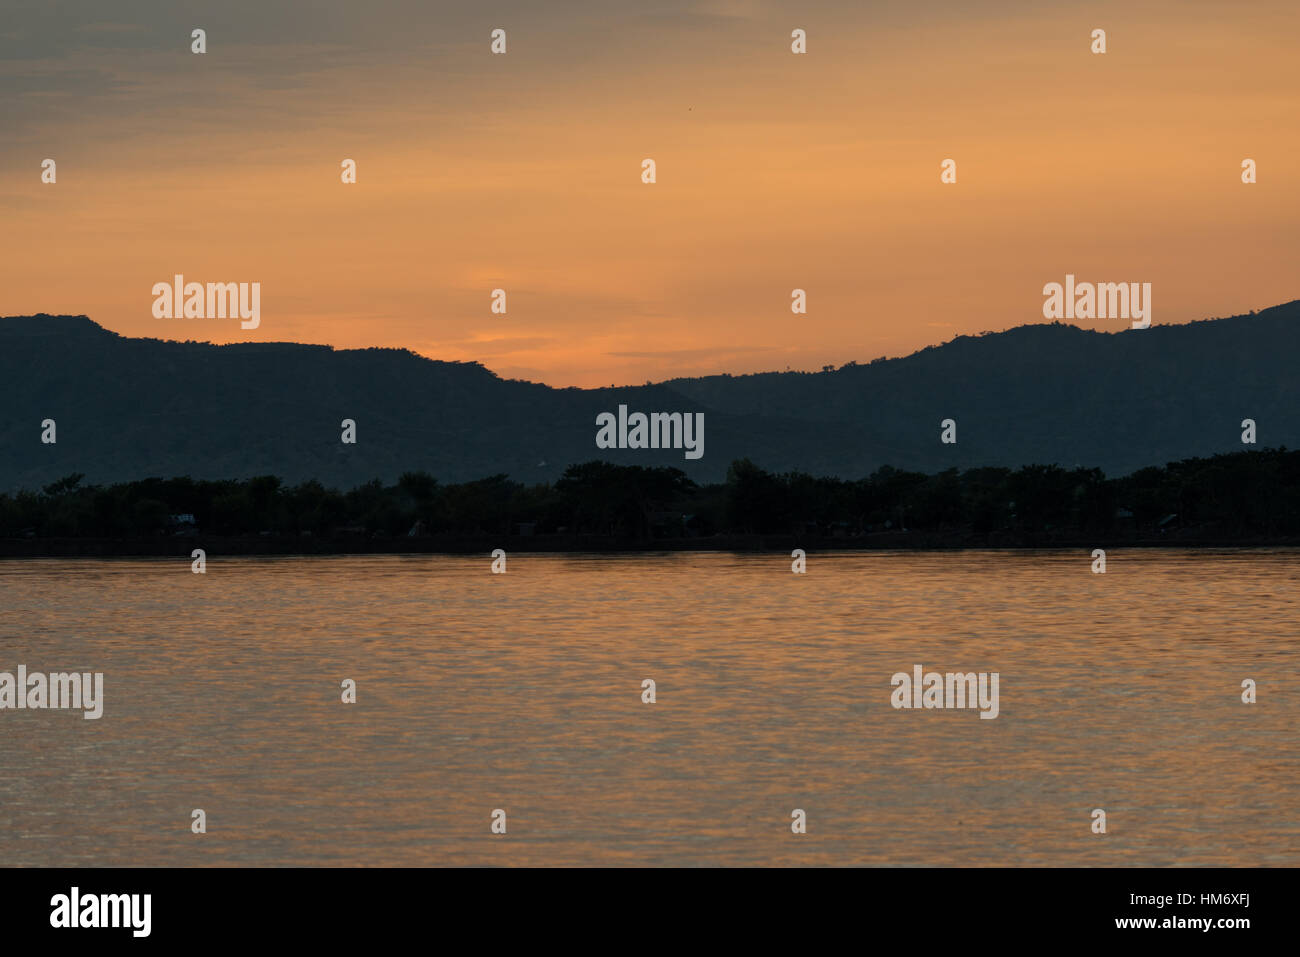 BAGAN, Myanmar (Burma) - The Ayeyarwaddy River (or Irrawaddy River) is the largest river in Myanmar. Running from Stock Photo